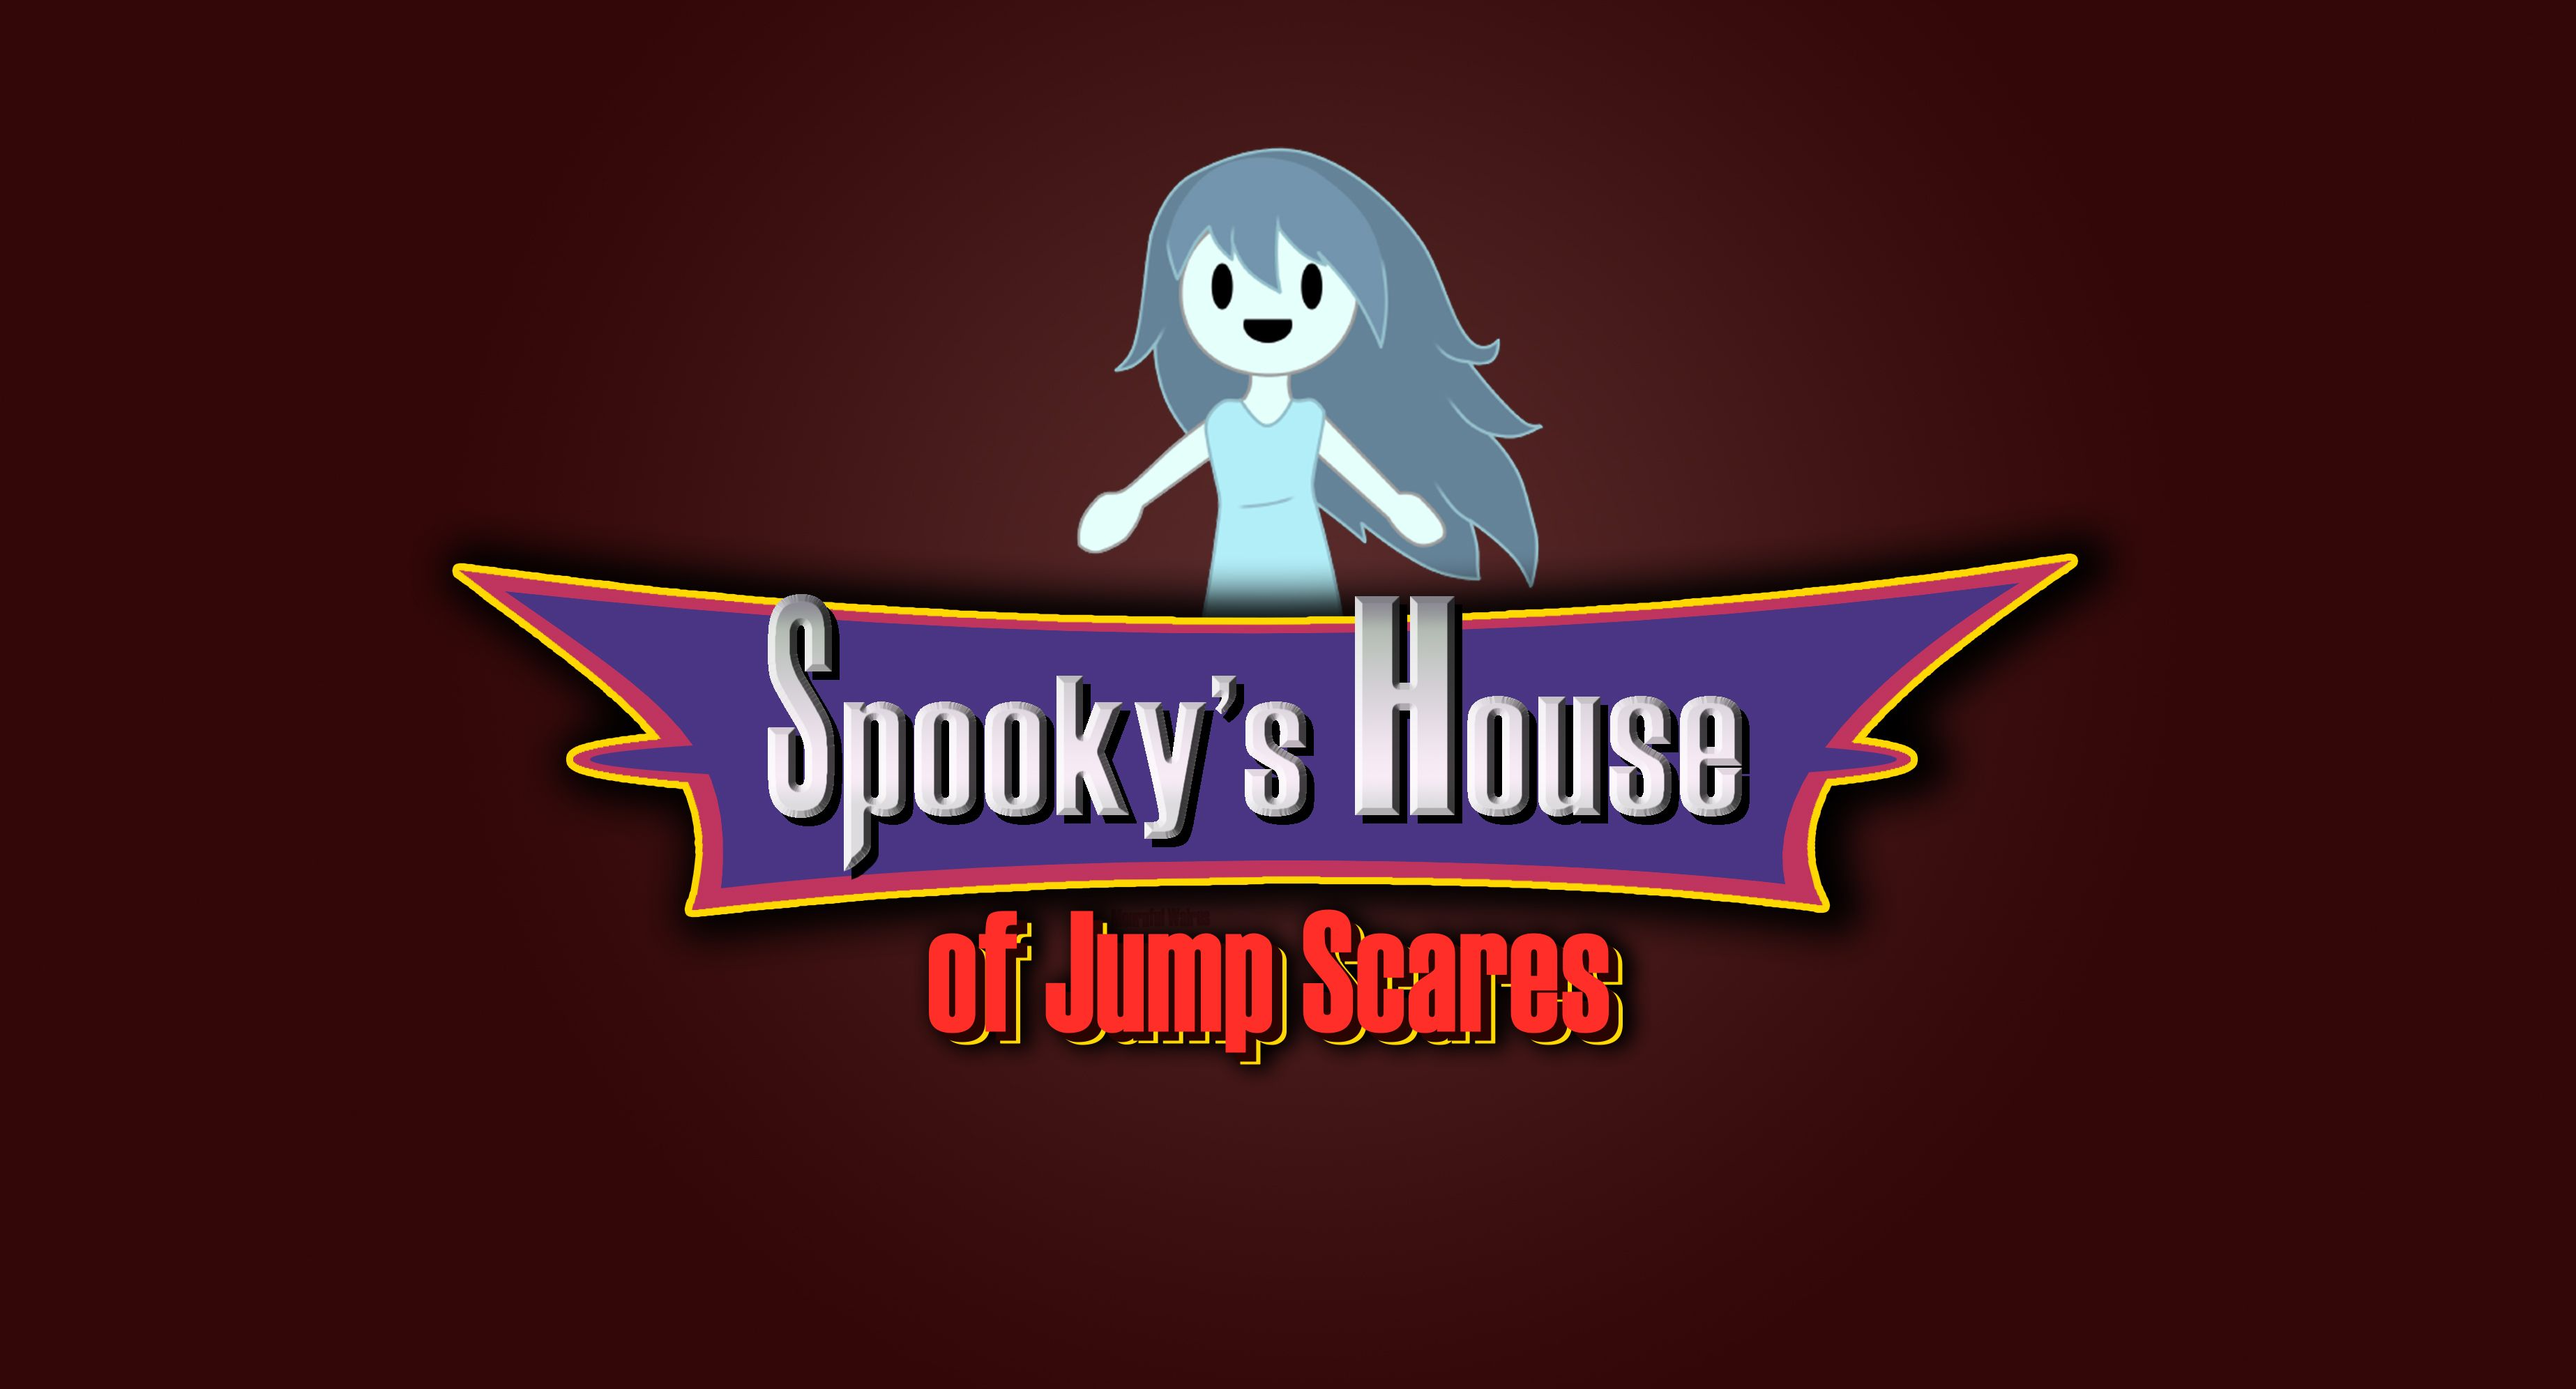 Spooky house of jumpscares spooky house of jumpscares 1 2 3 4 5 6 7 8